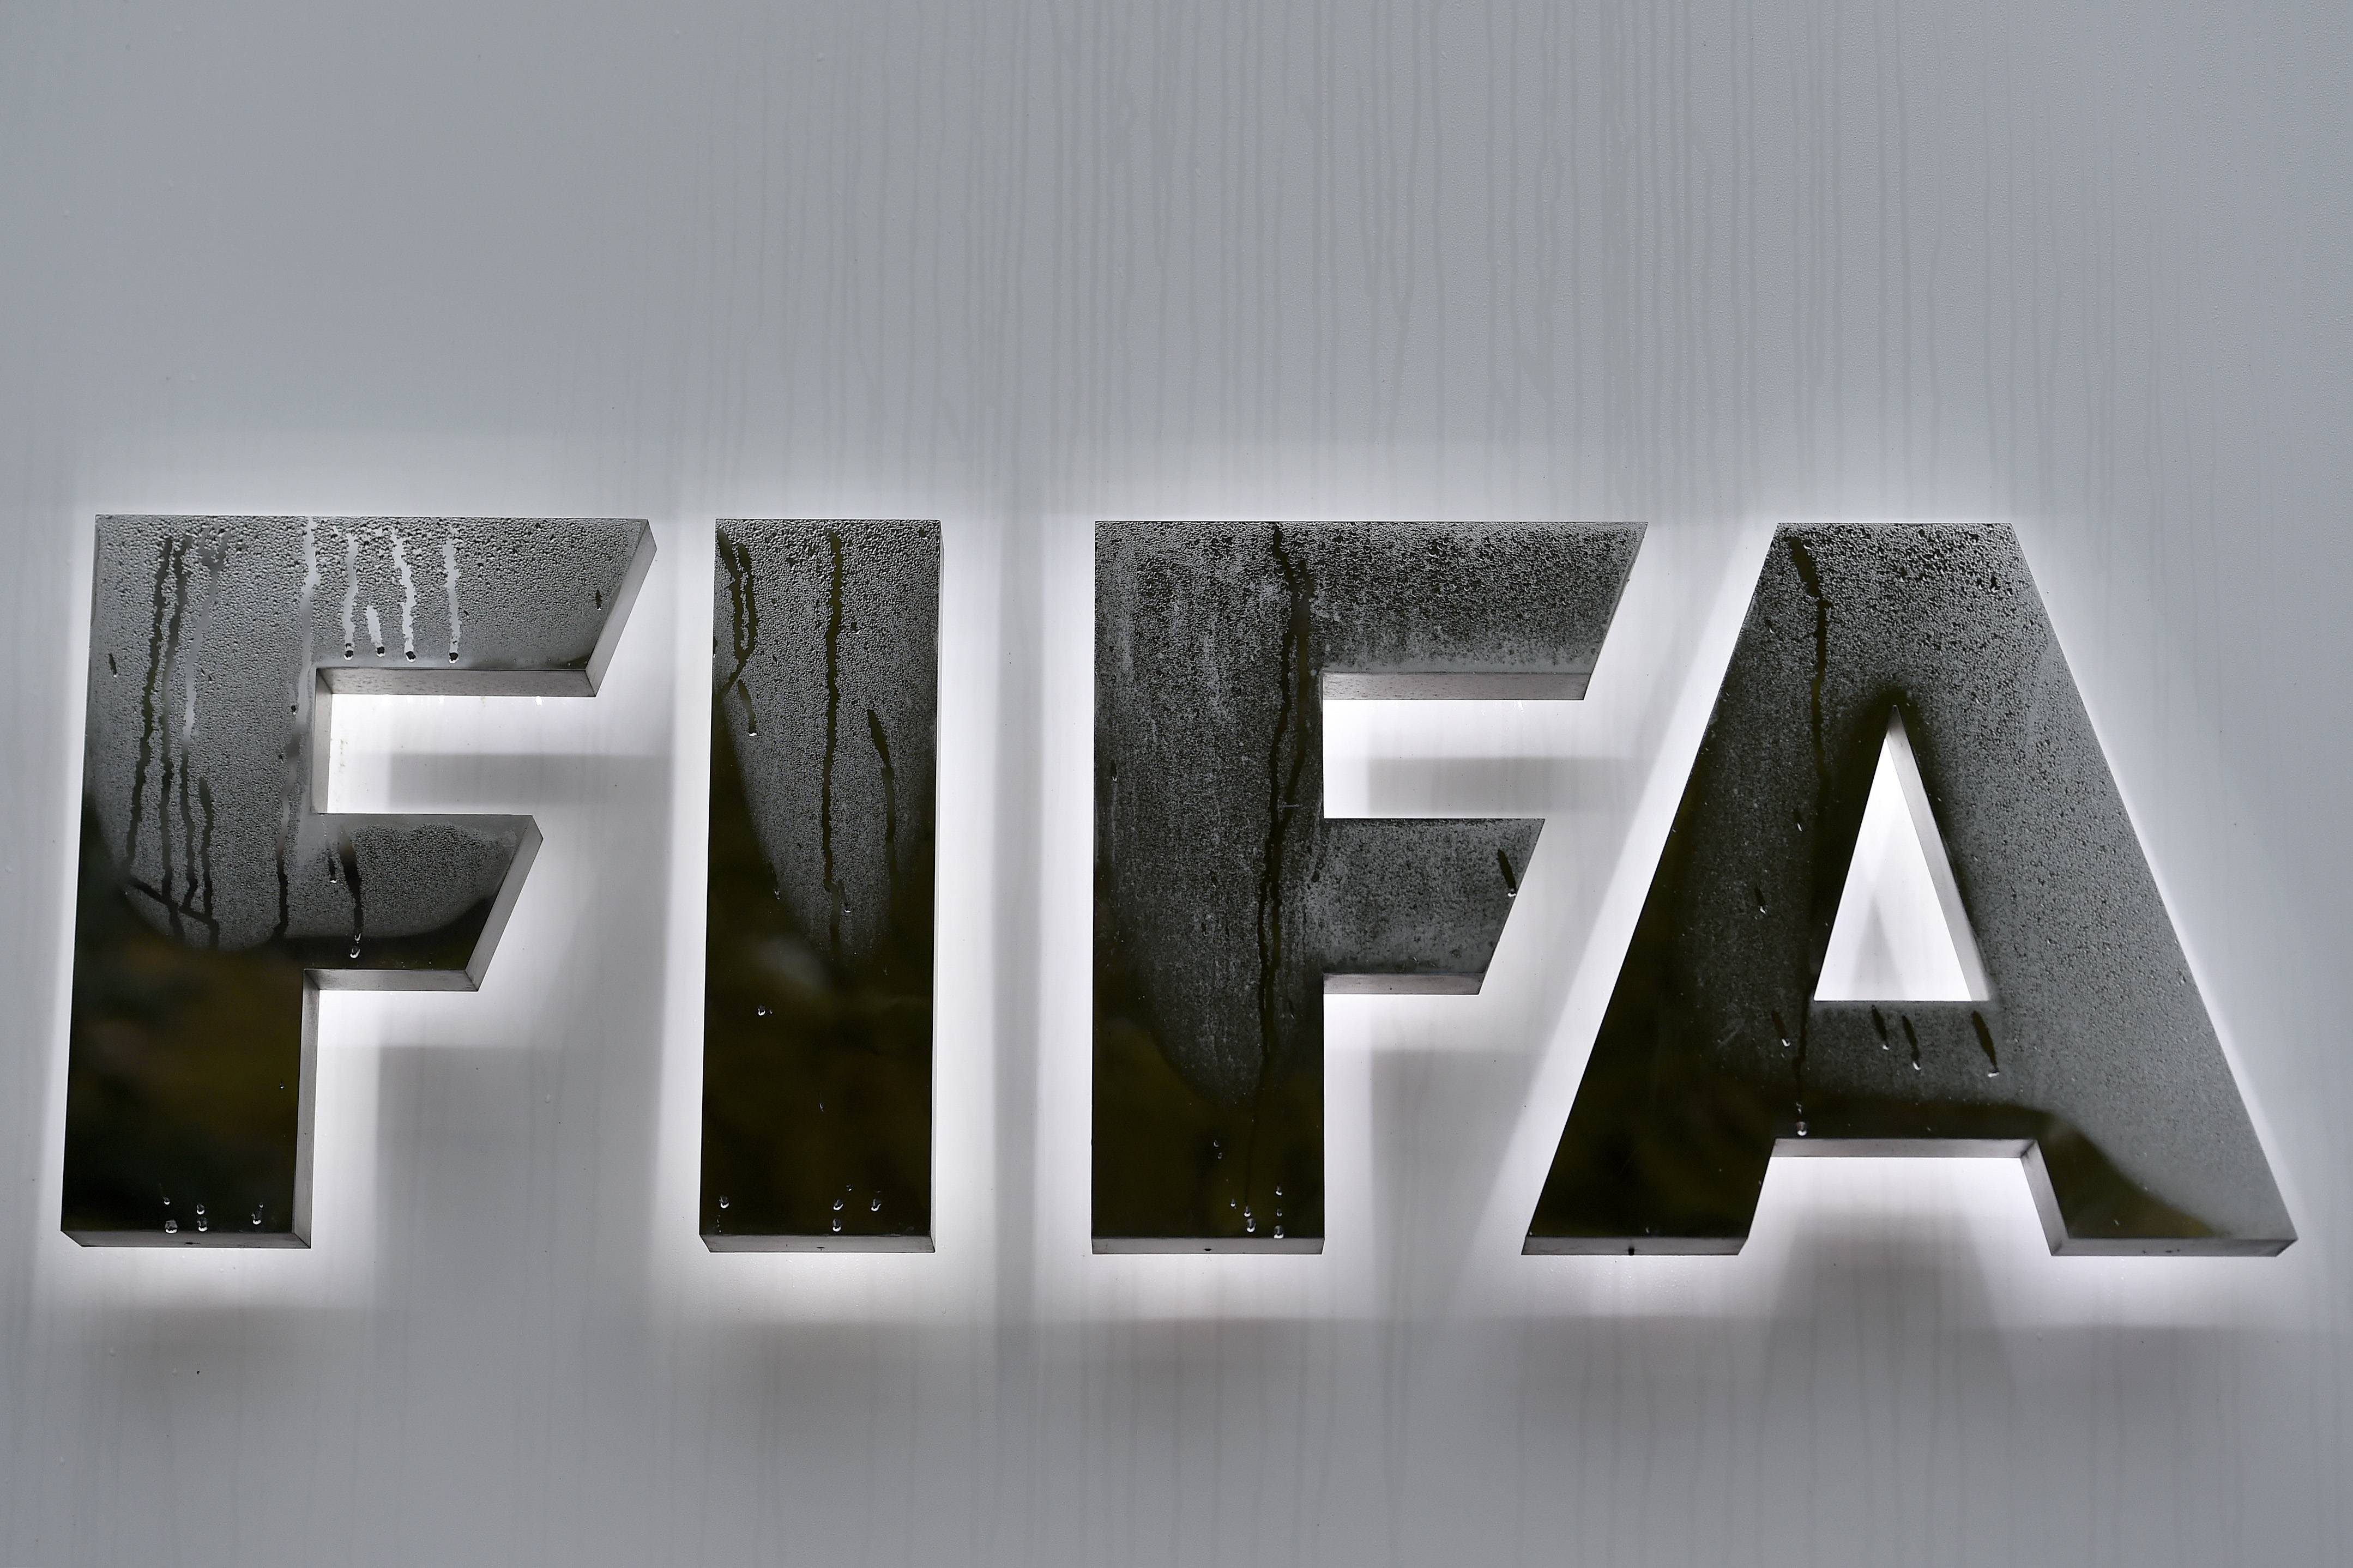 FIFA boosts China's chance of hosting 2030 World Cup